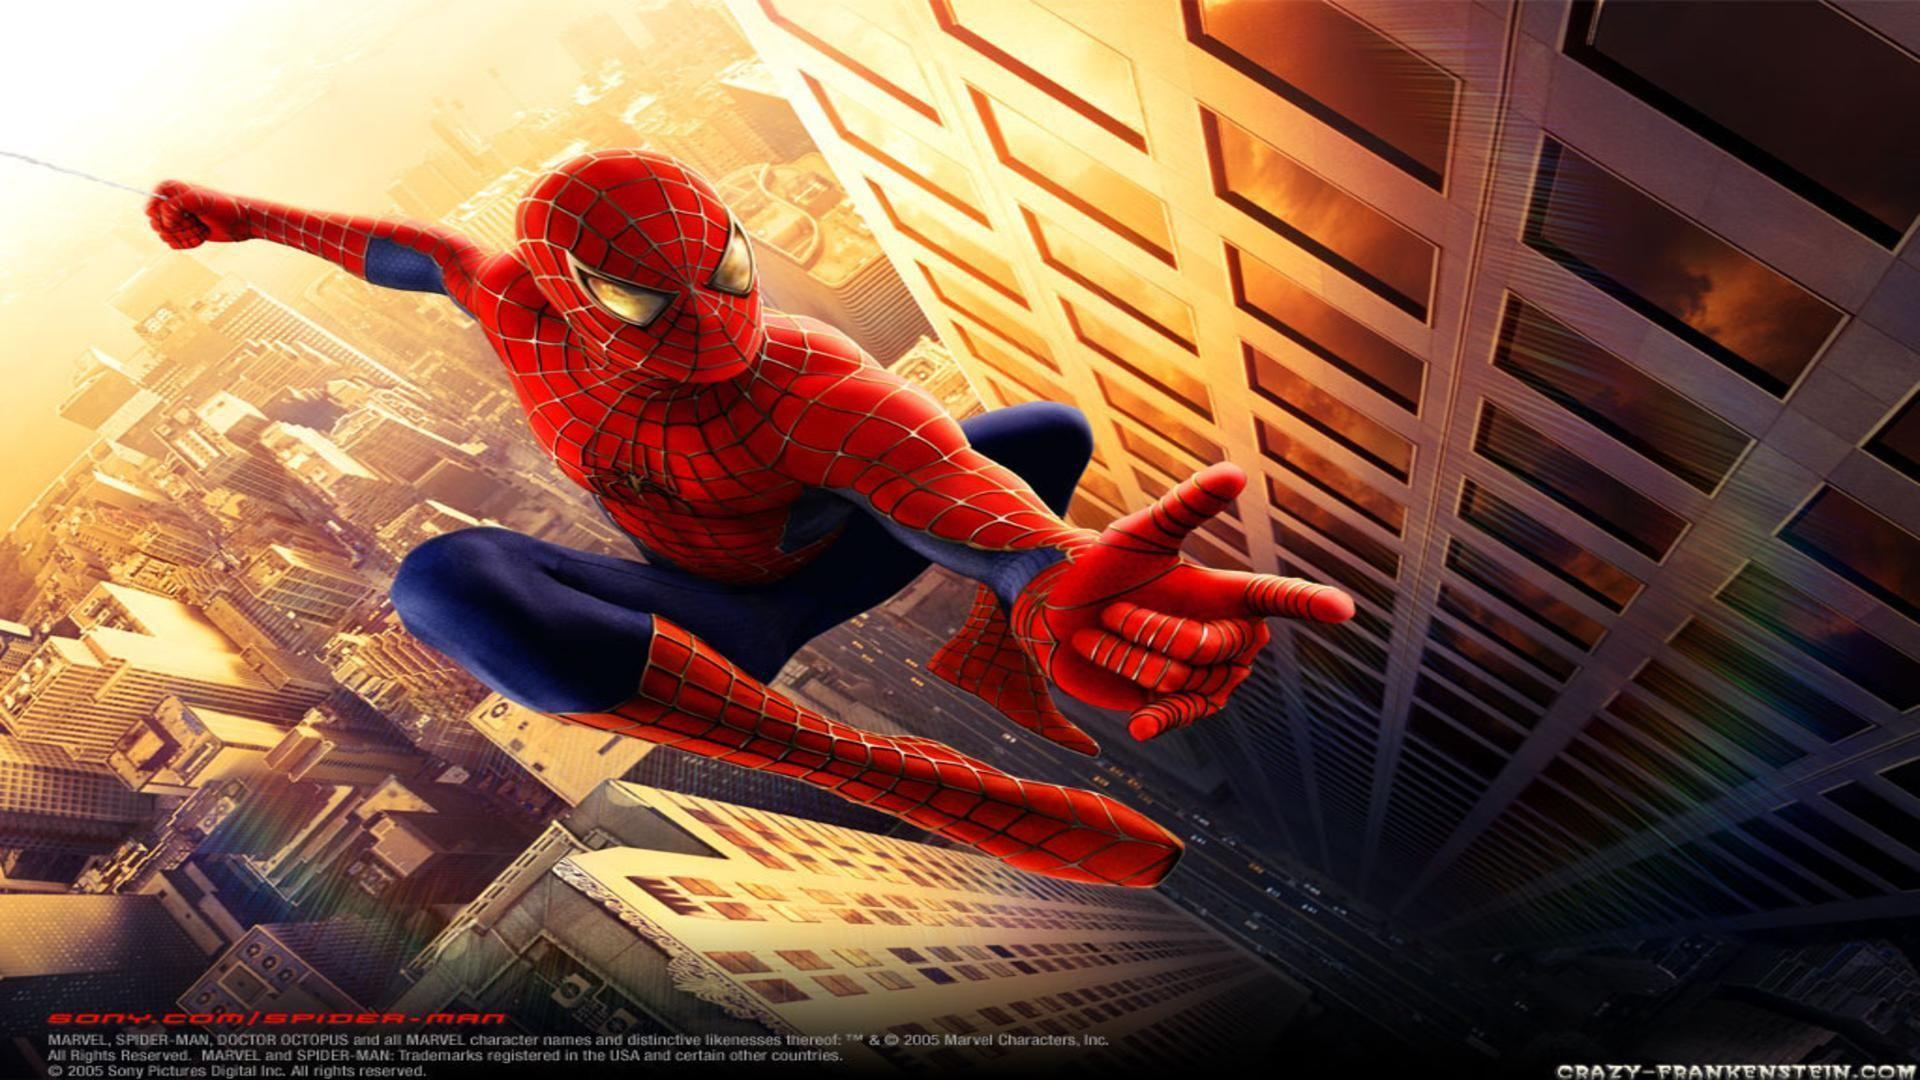 One sheet spiderman wallpapers movie poster free desktop backgrounds